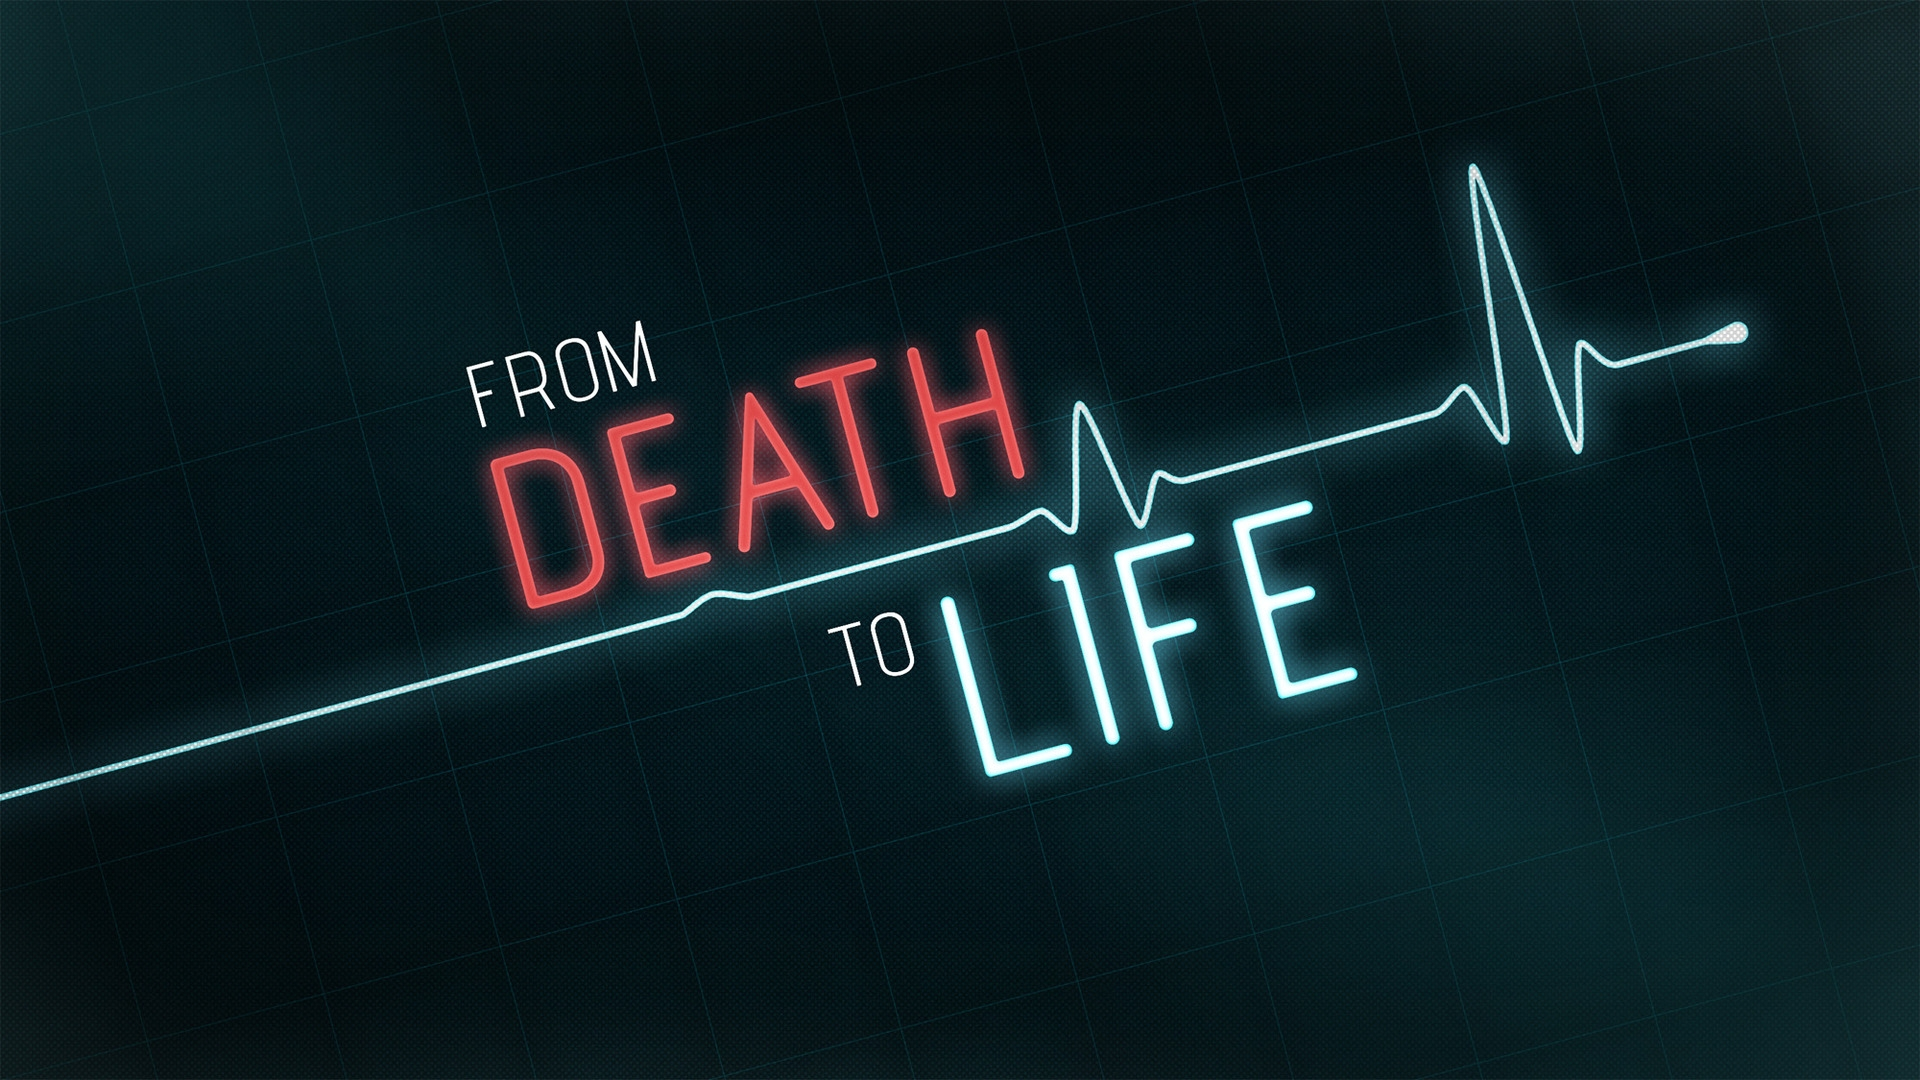 Sunday February 10, 2019 From Death To Life - Pastor Anthony Cox